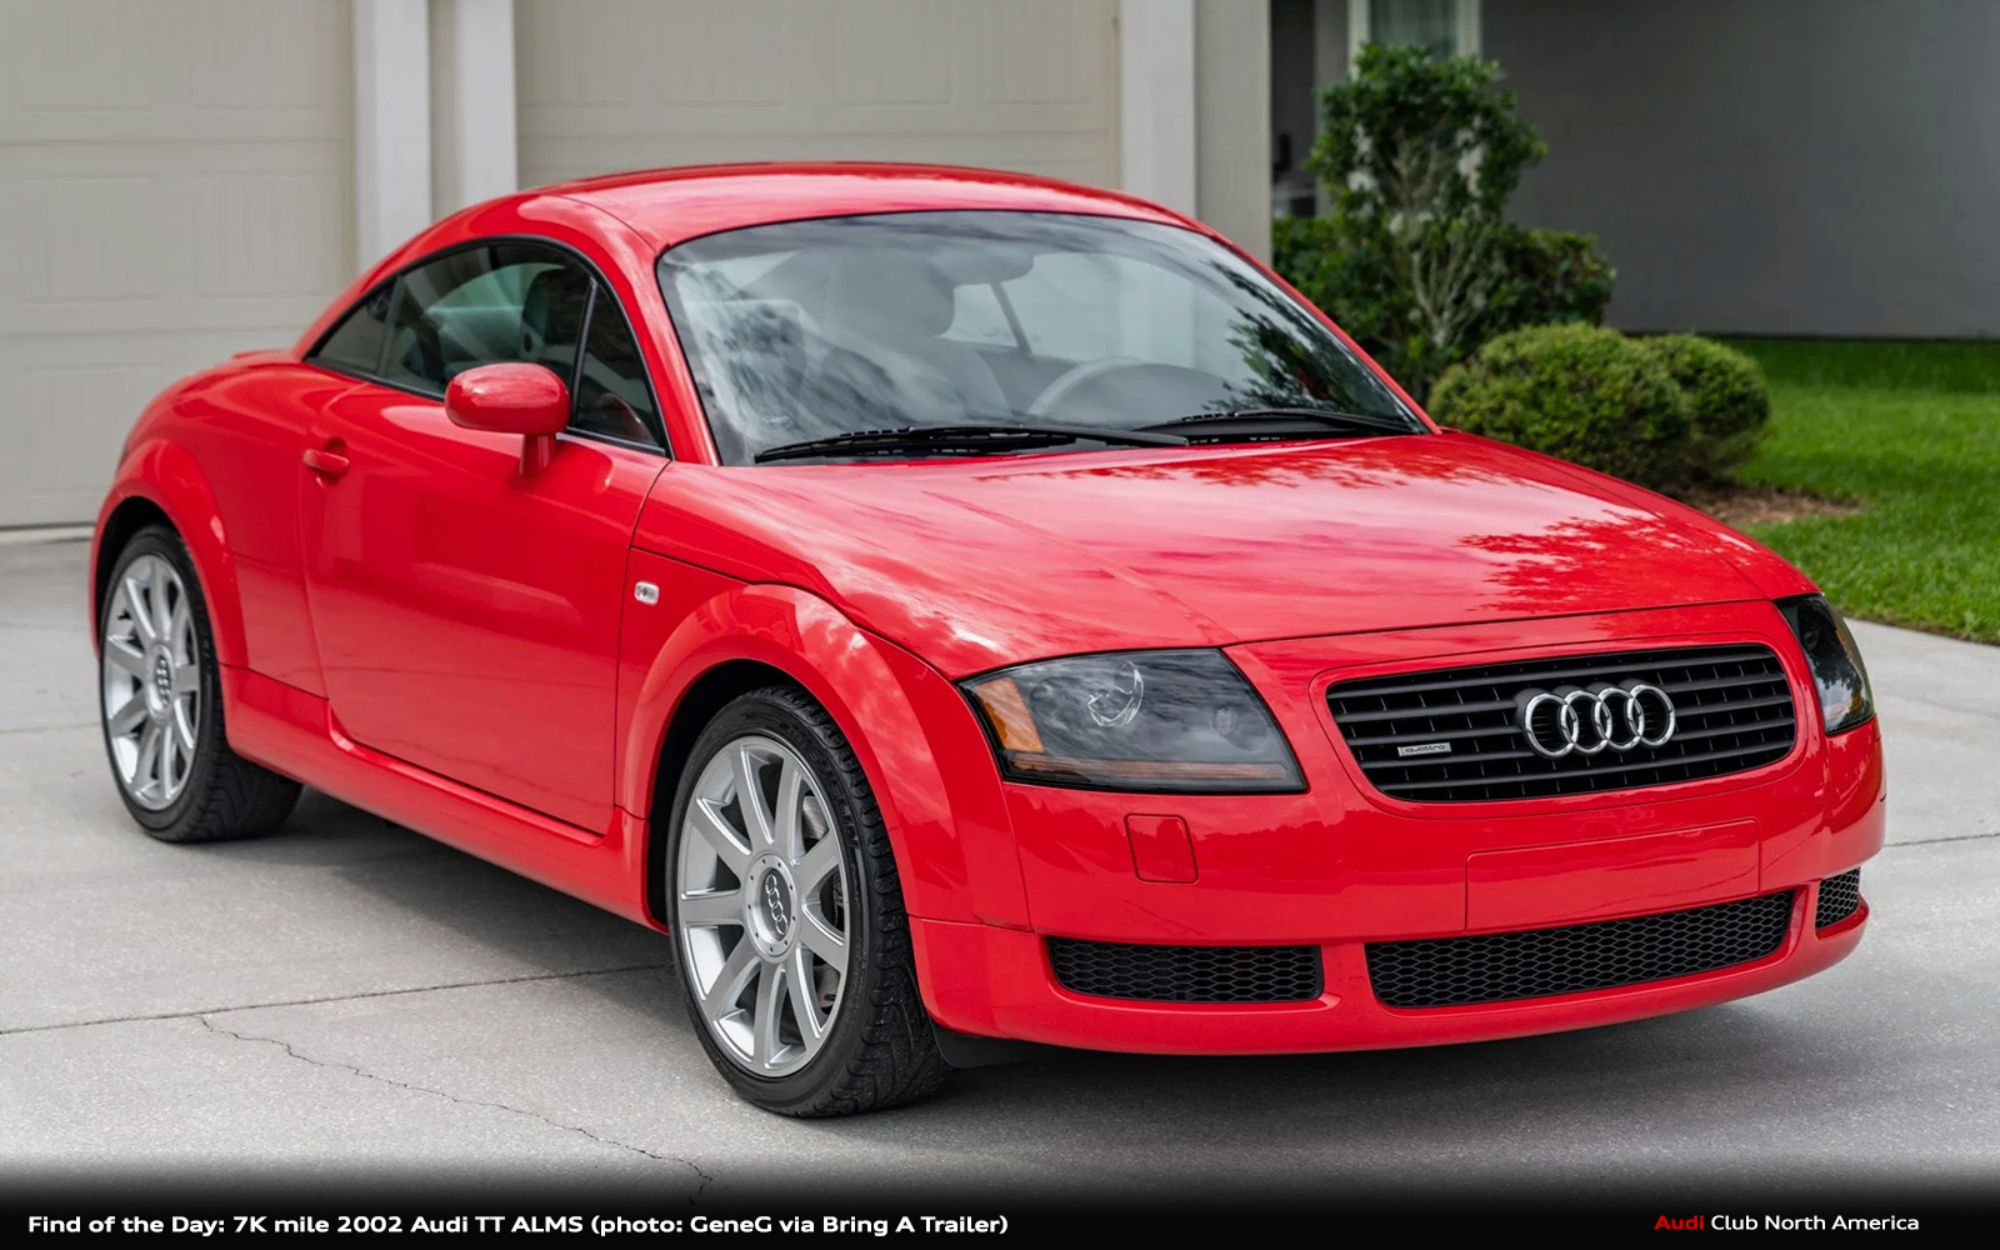 Find of the Day: 7K mile 2002 Audi TT ALMS